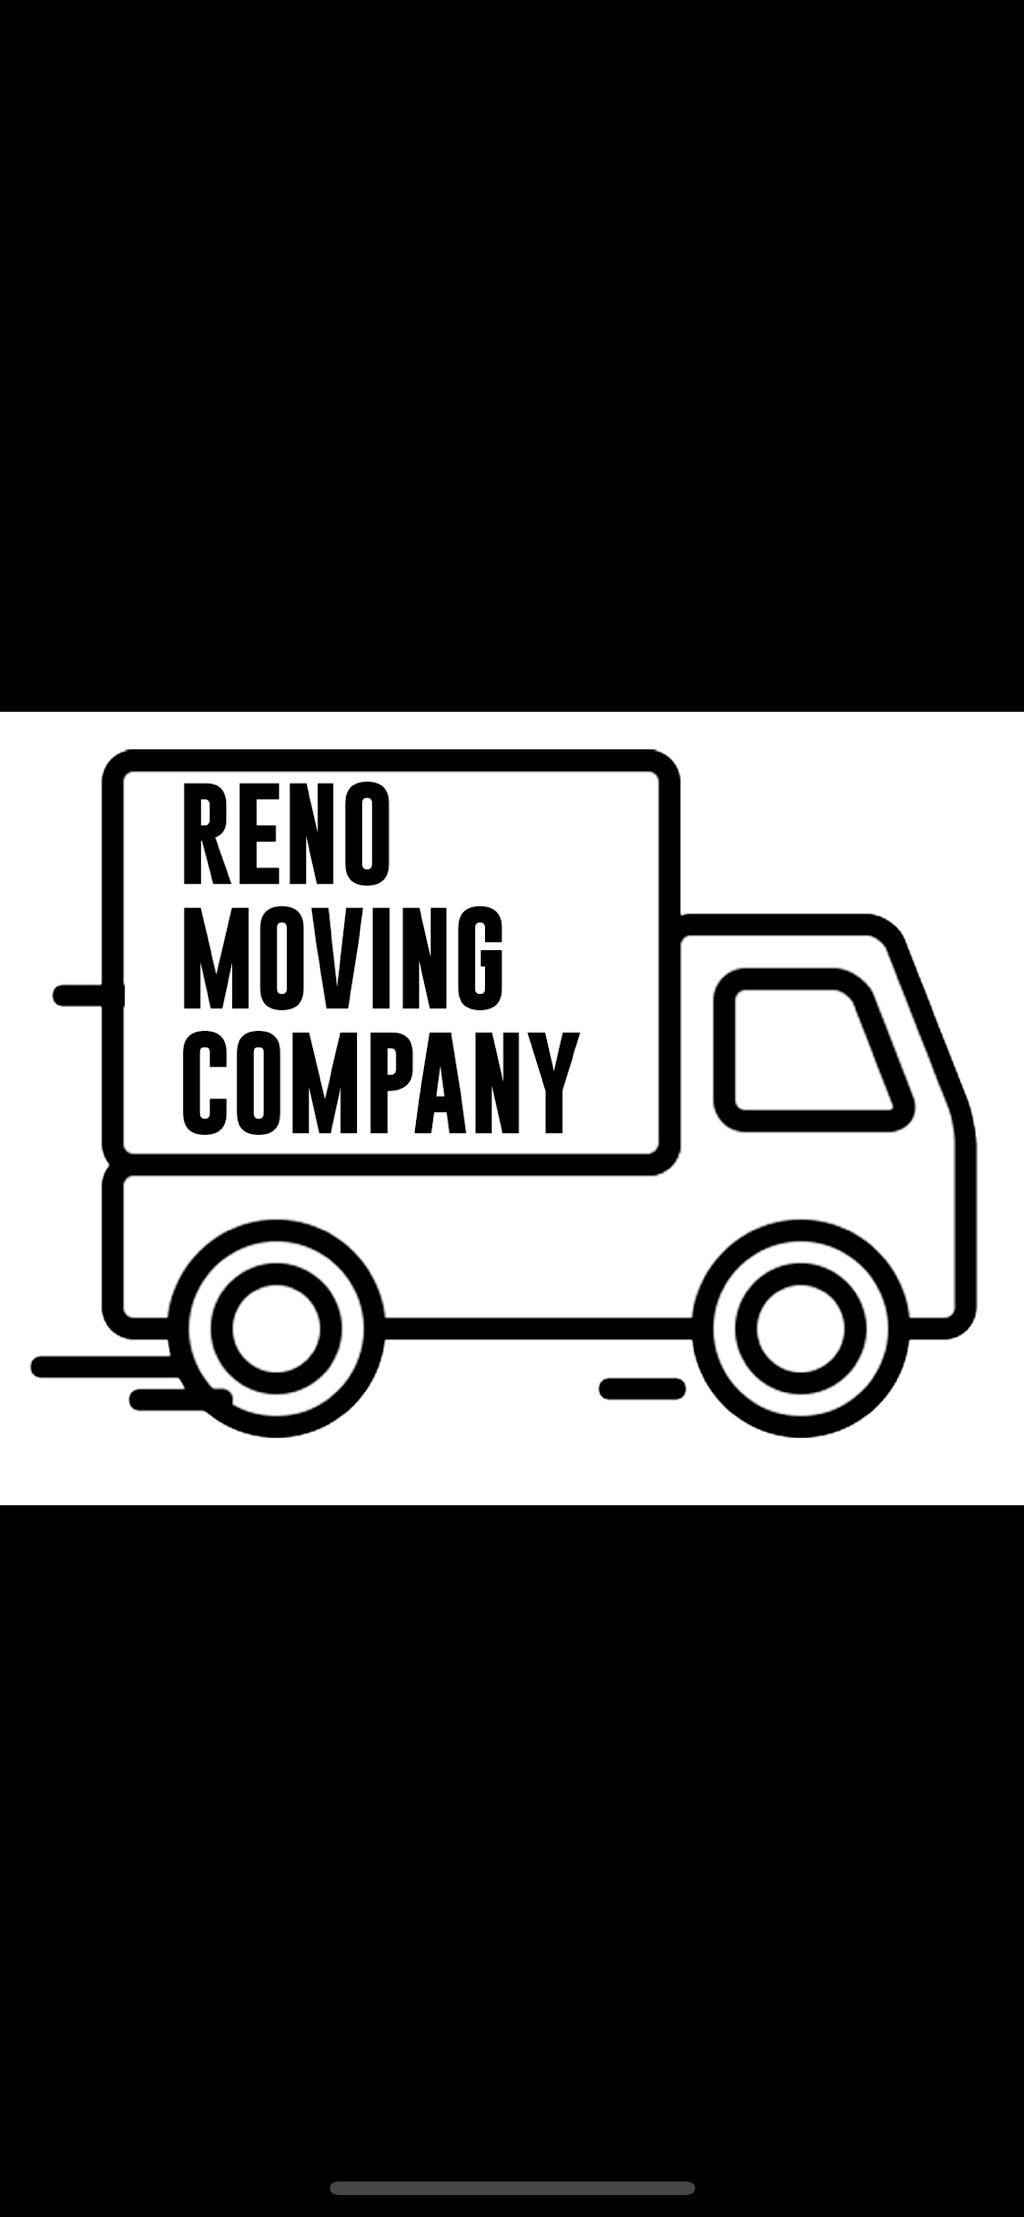 Reno Moving Company